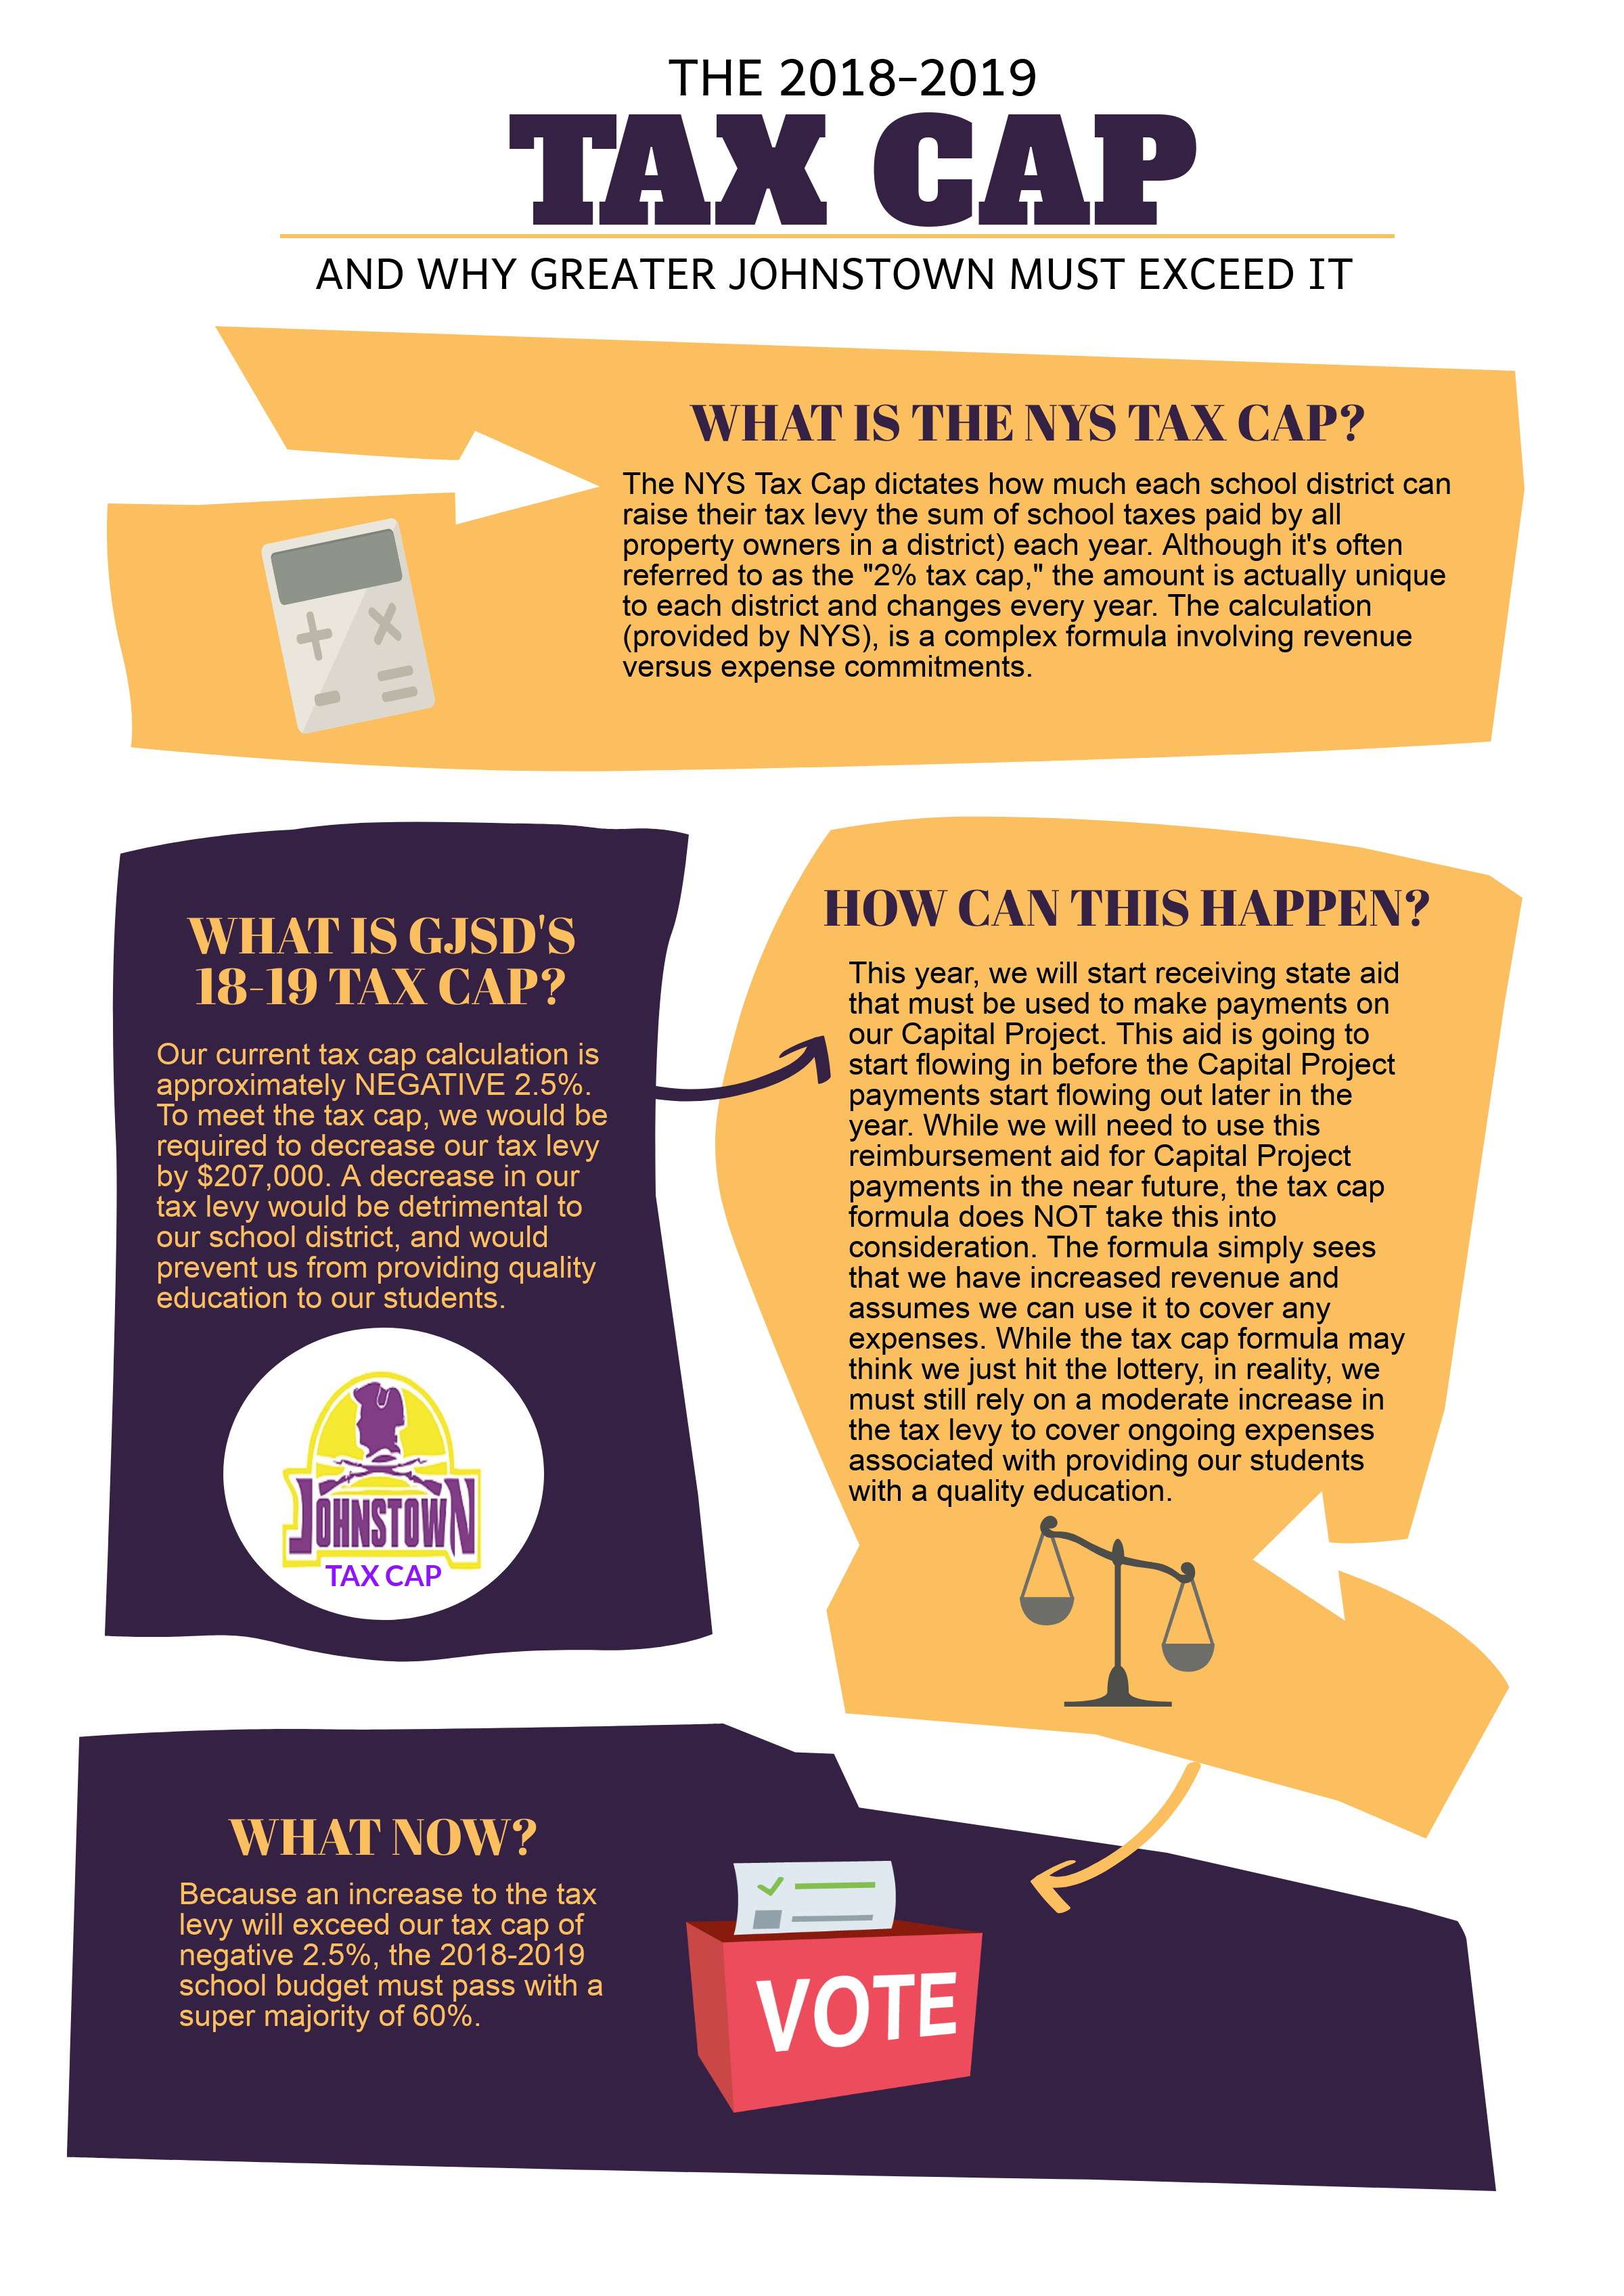 tax cap explained in an infographic